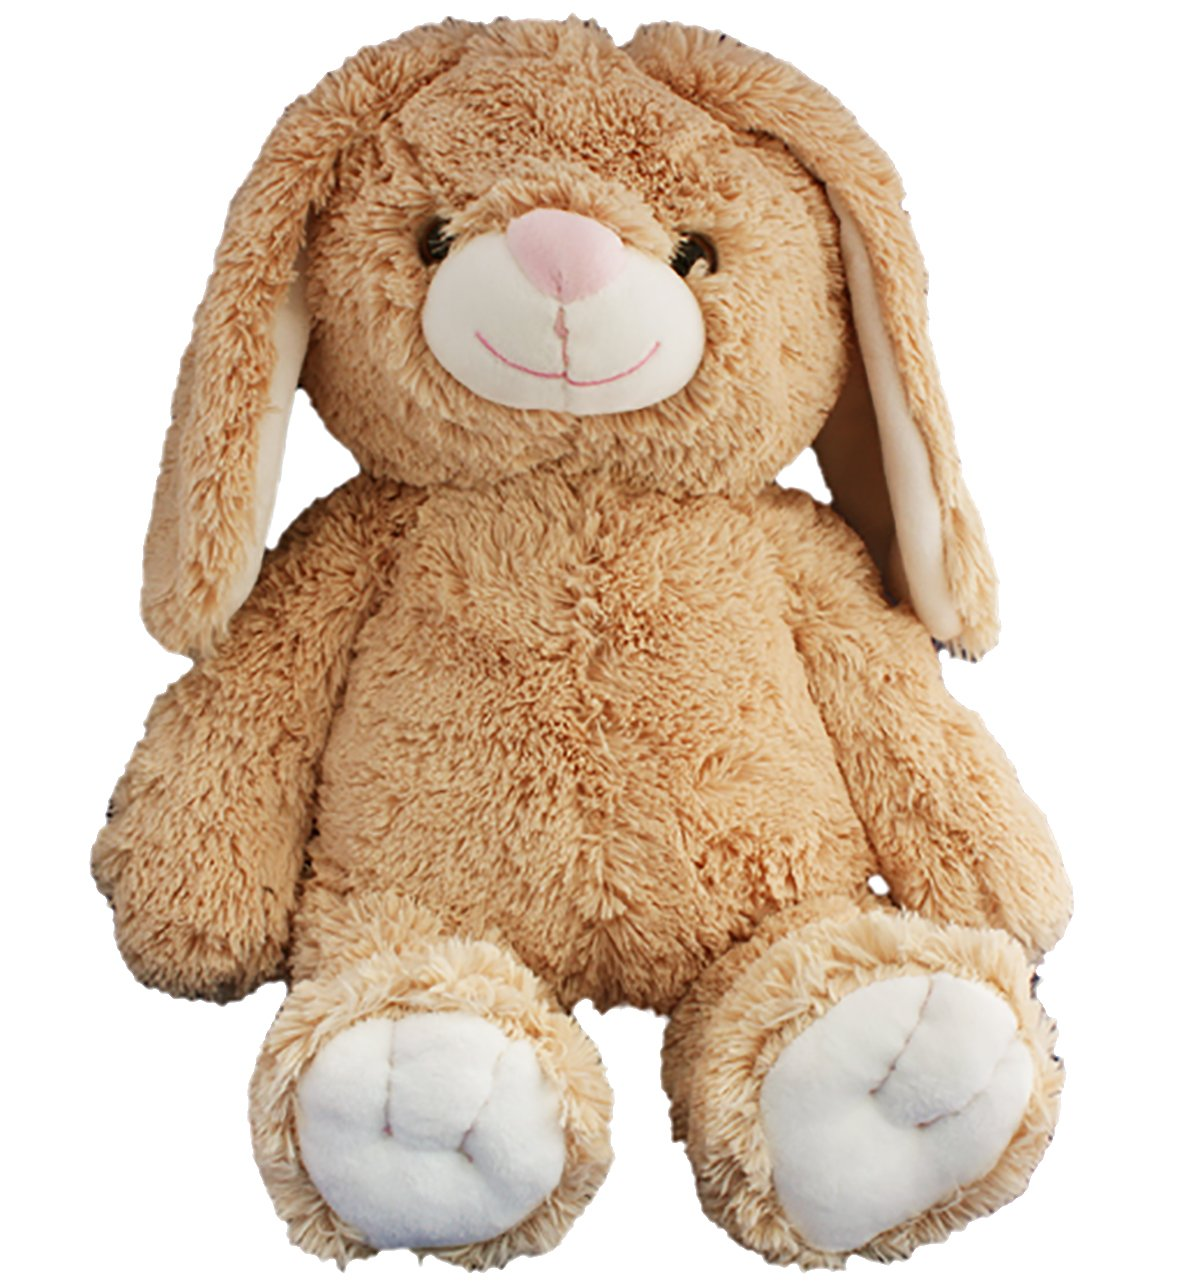 No Sew Kit With Cute Backpack! Make Your Own Stuffed Animal Flopsy The Bunny